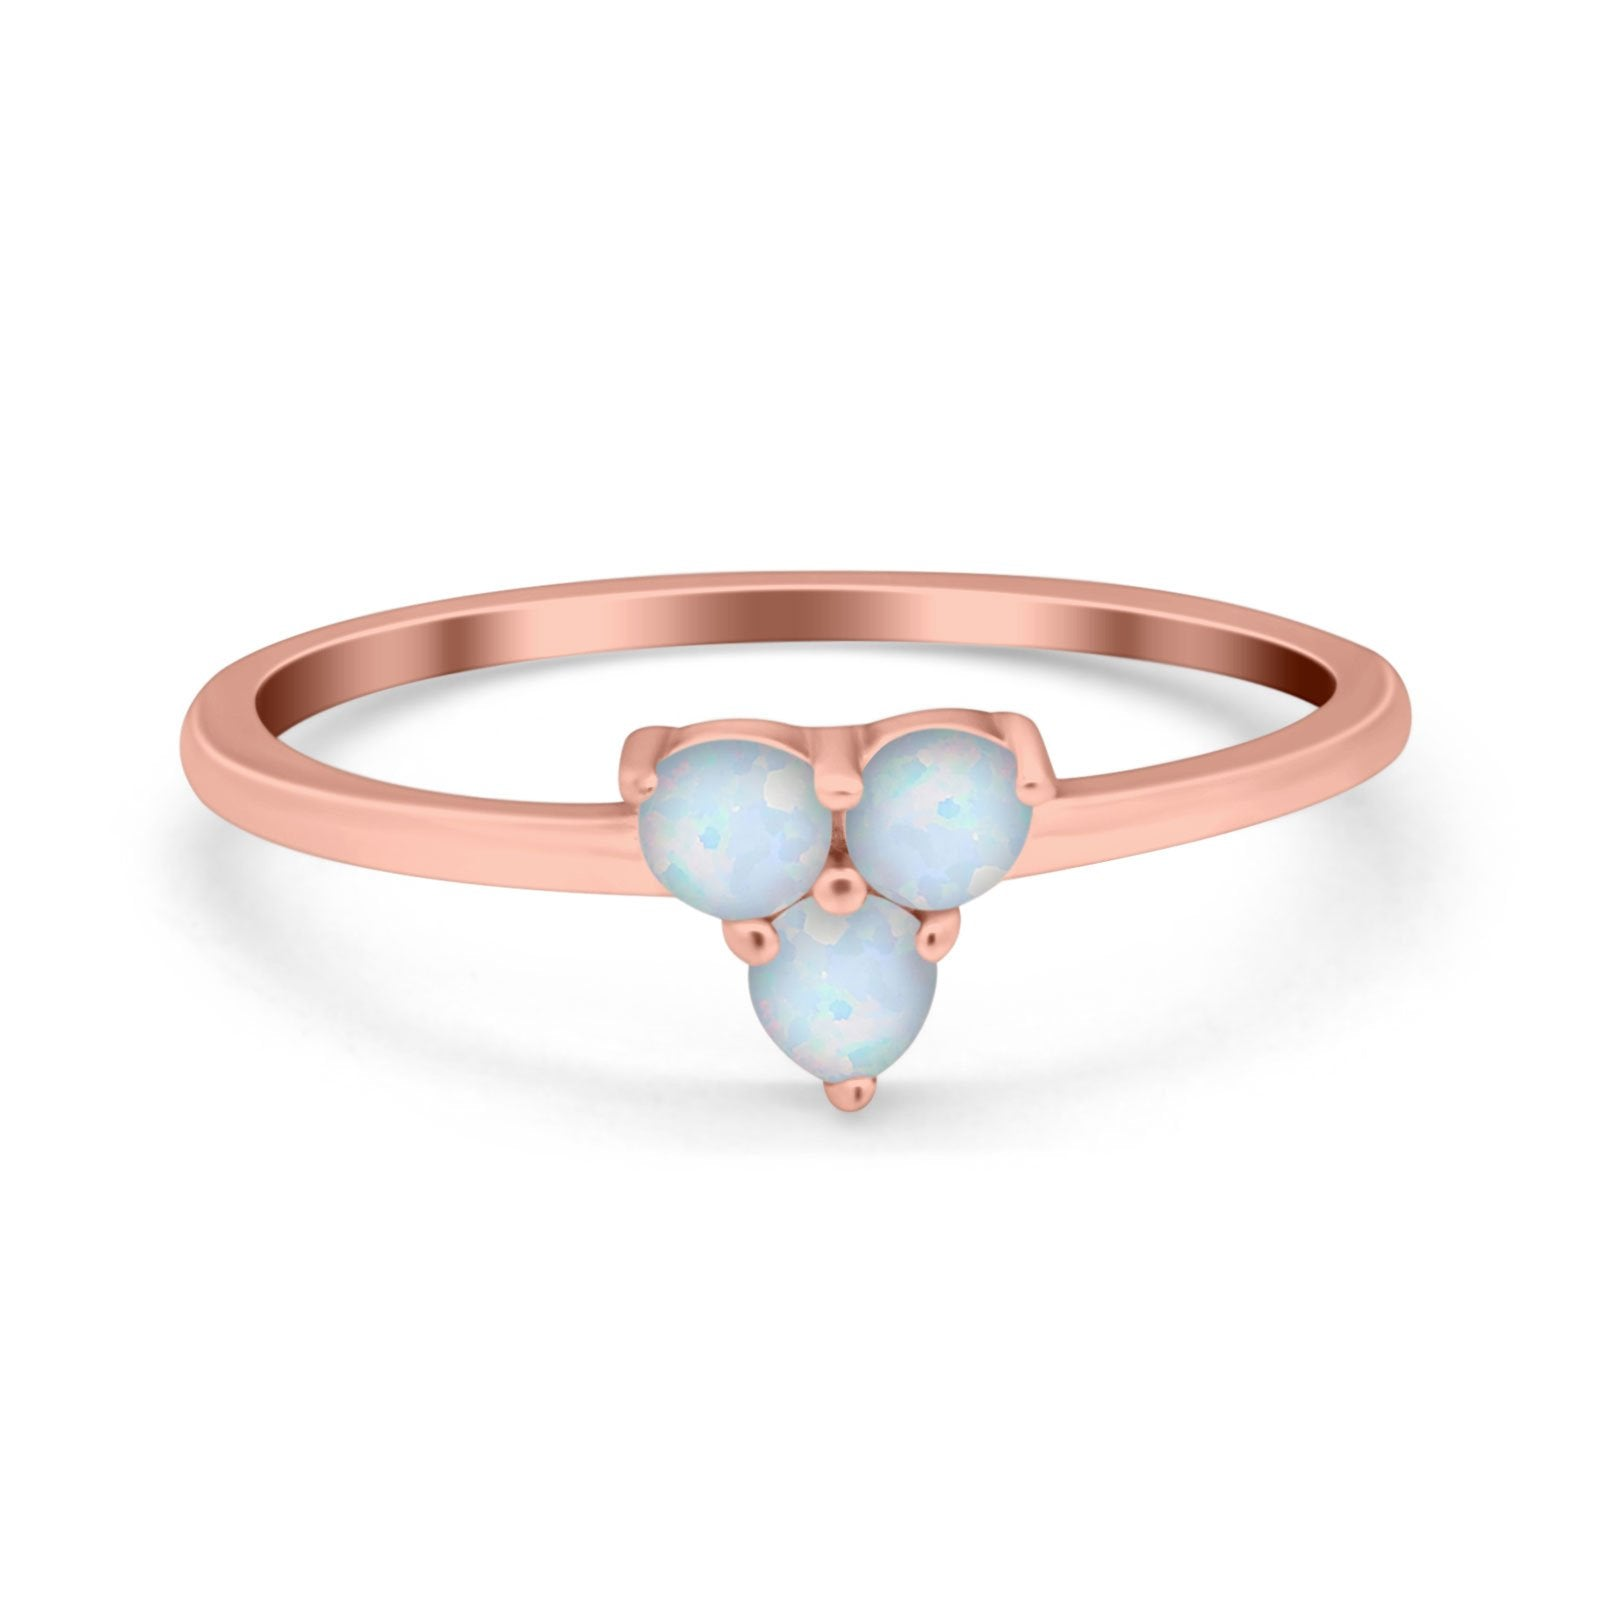 Fashion Thumb Ring Round Simulated Cubic Zirconia Opal 925 Sterling Silver